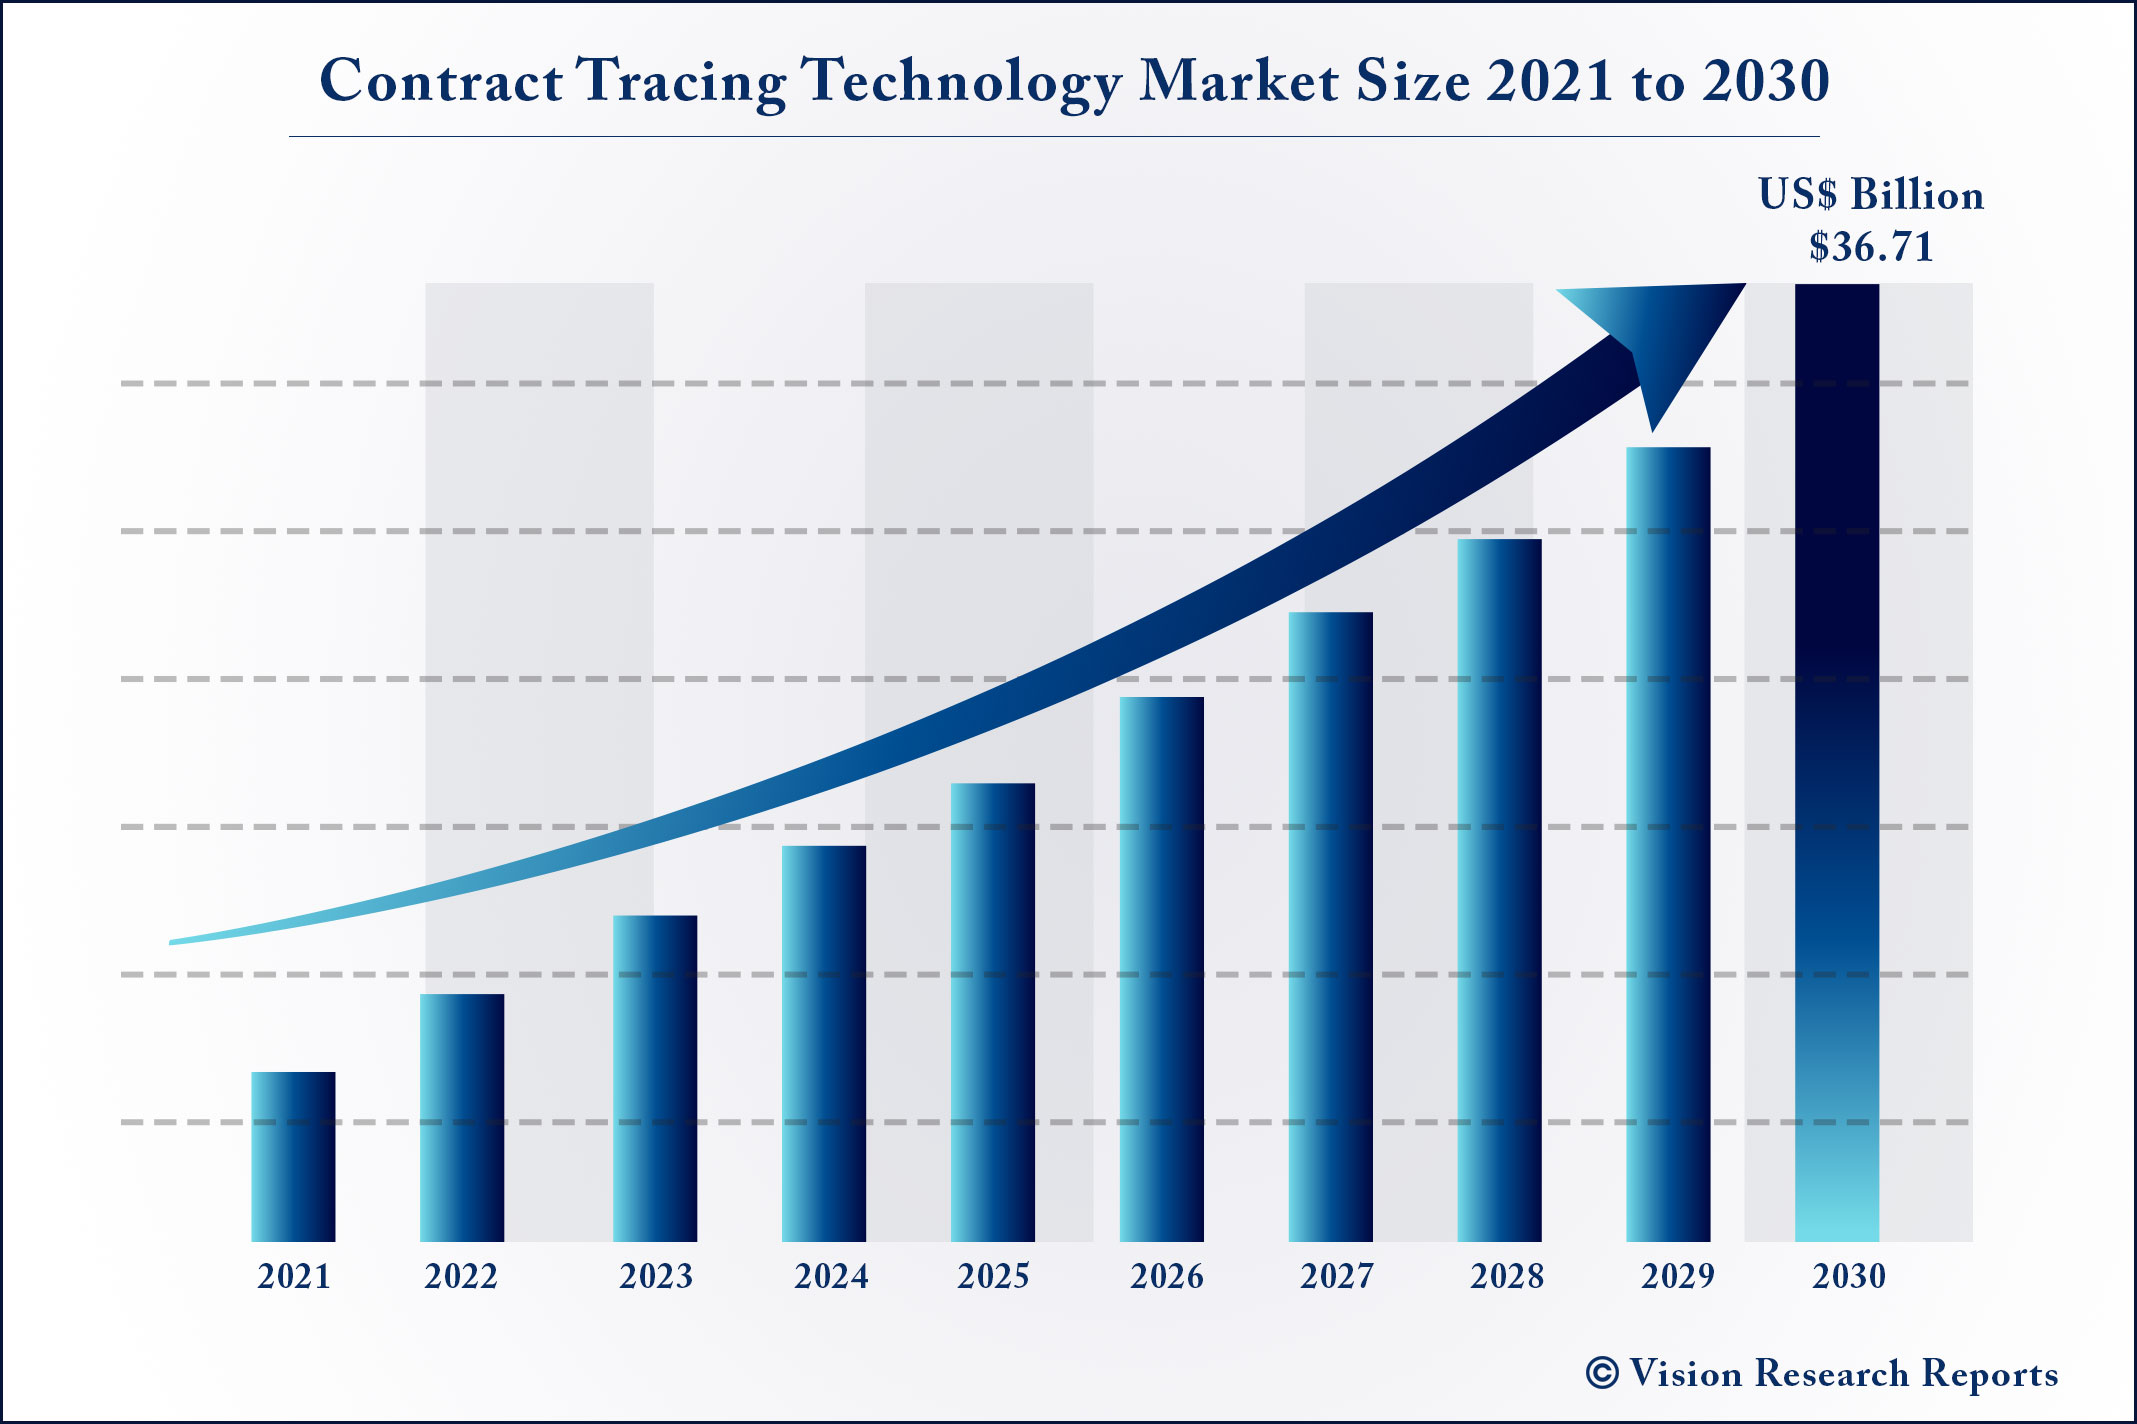 Contract Tracing Technology Market Size 2021 to 2030